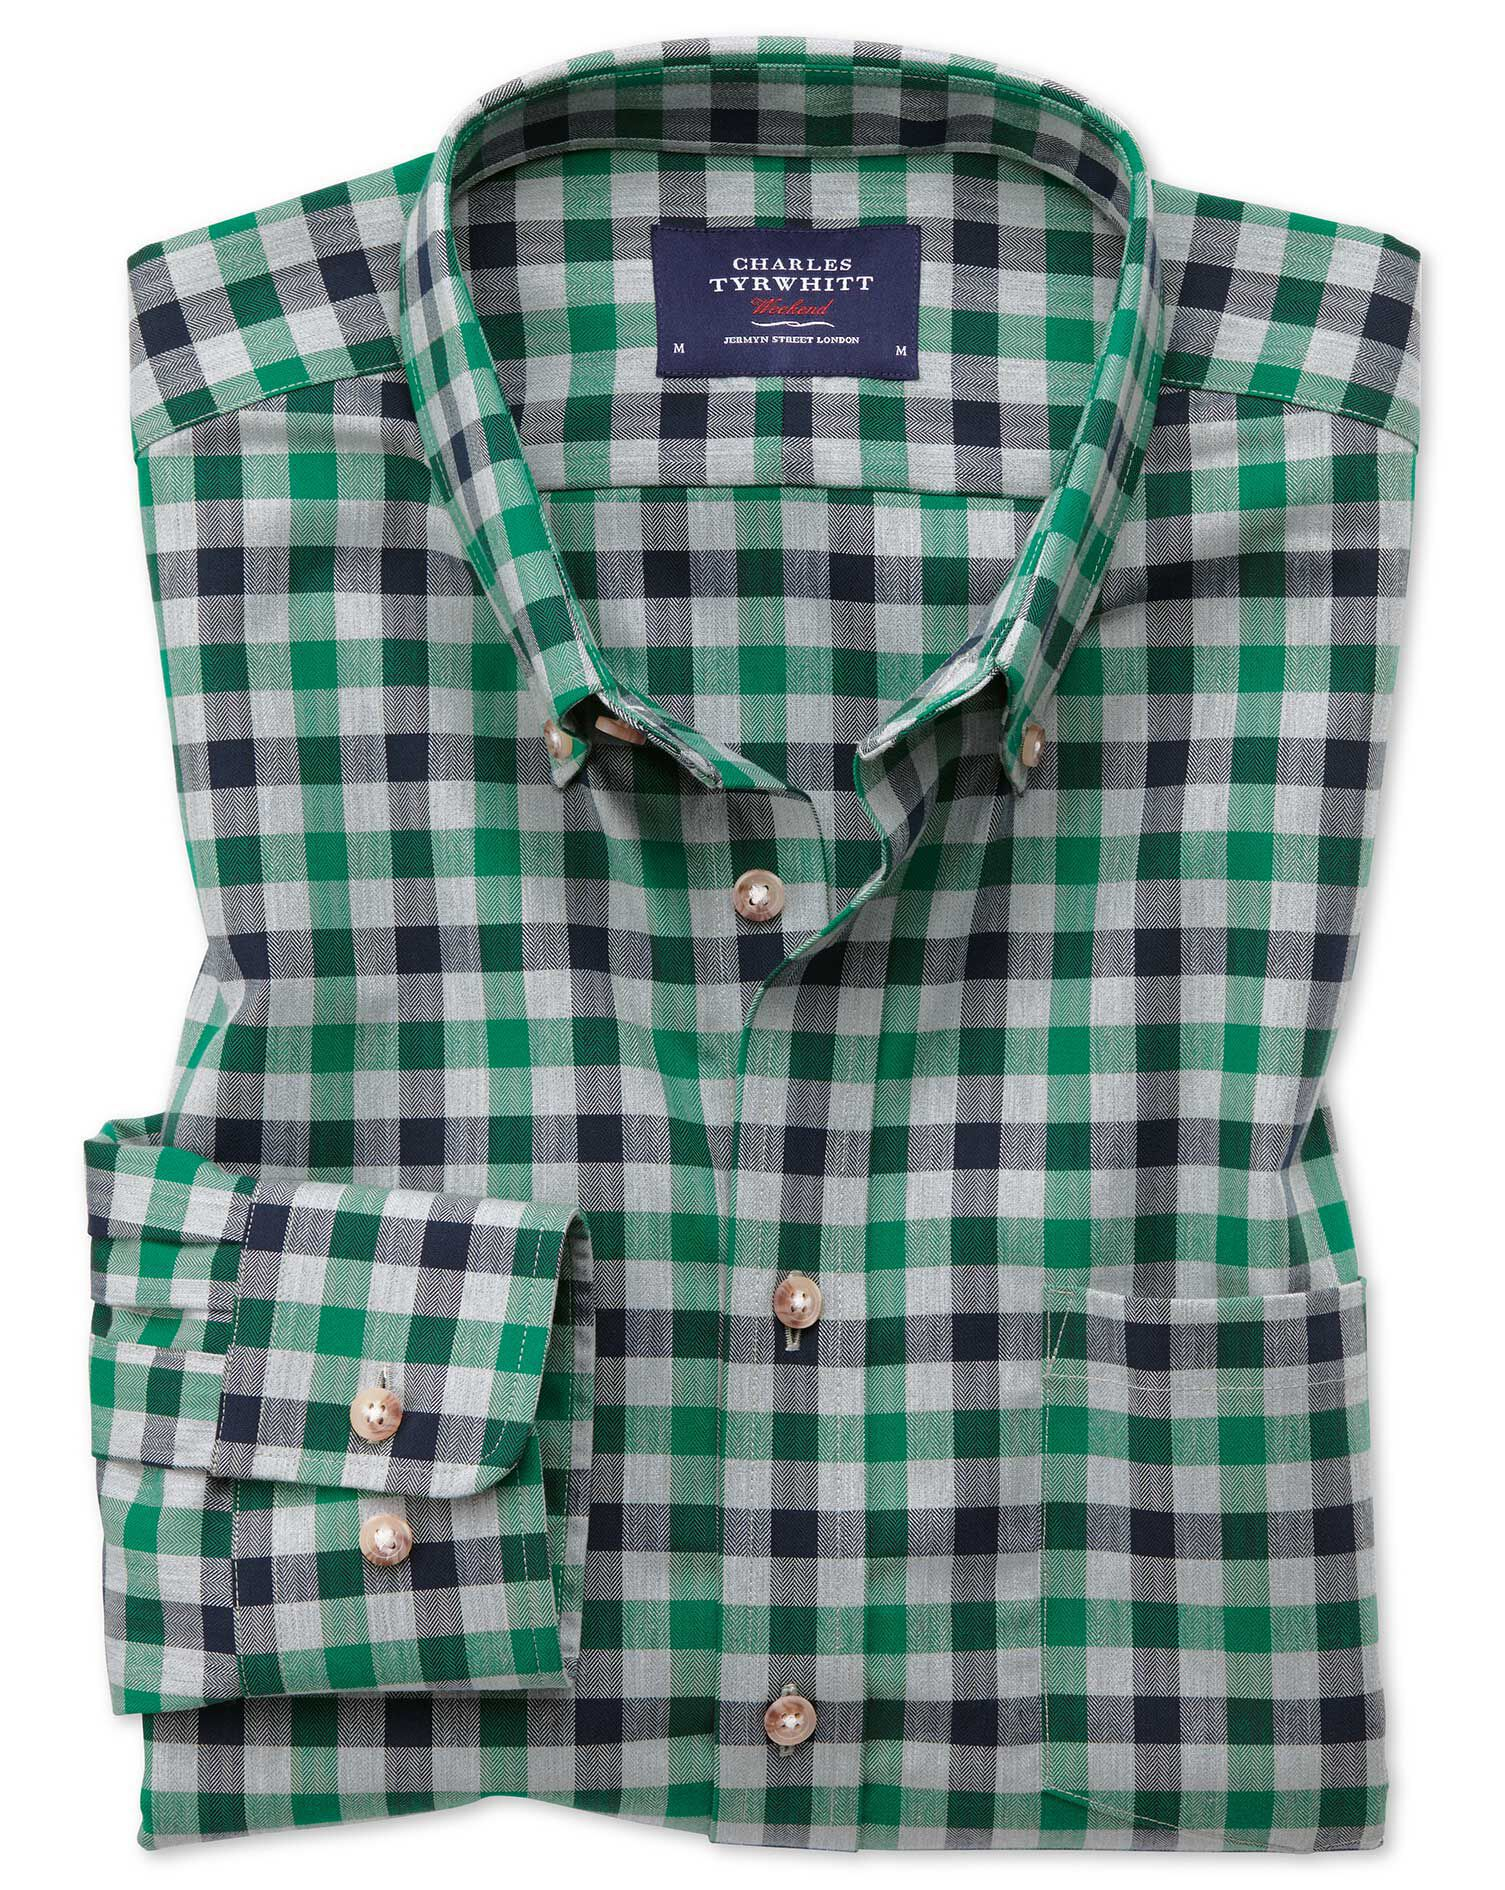 Classic Fit Button-Down Non-Iron Twill Green and Navy Gingham Cotton Shirt Single Cuff Size Large by